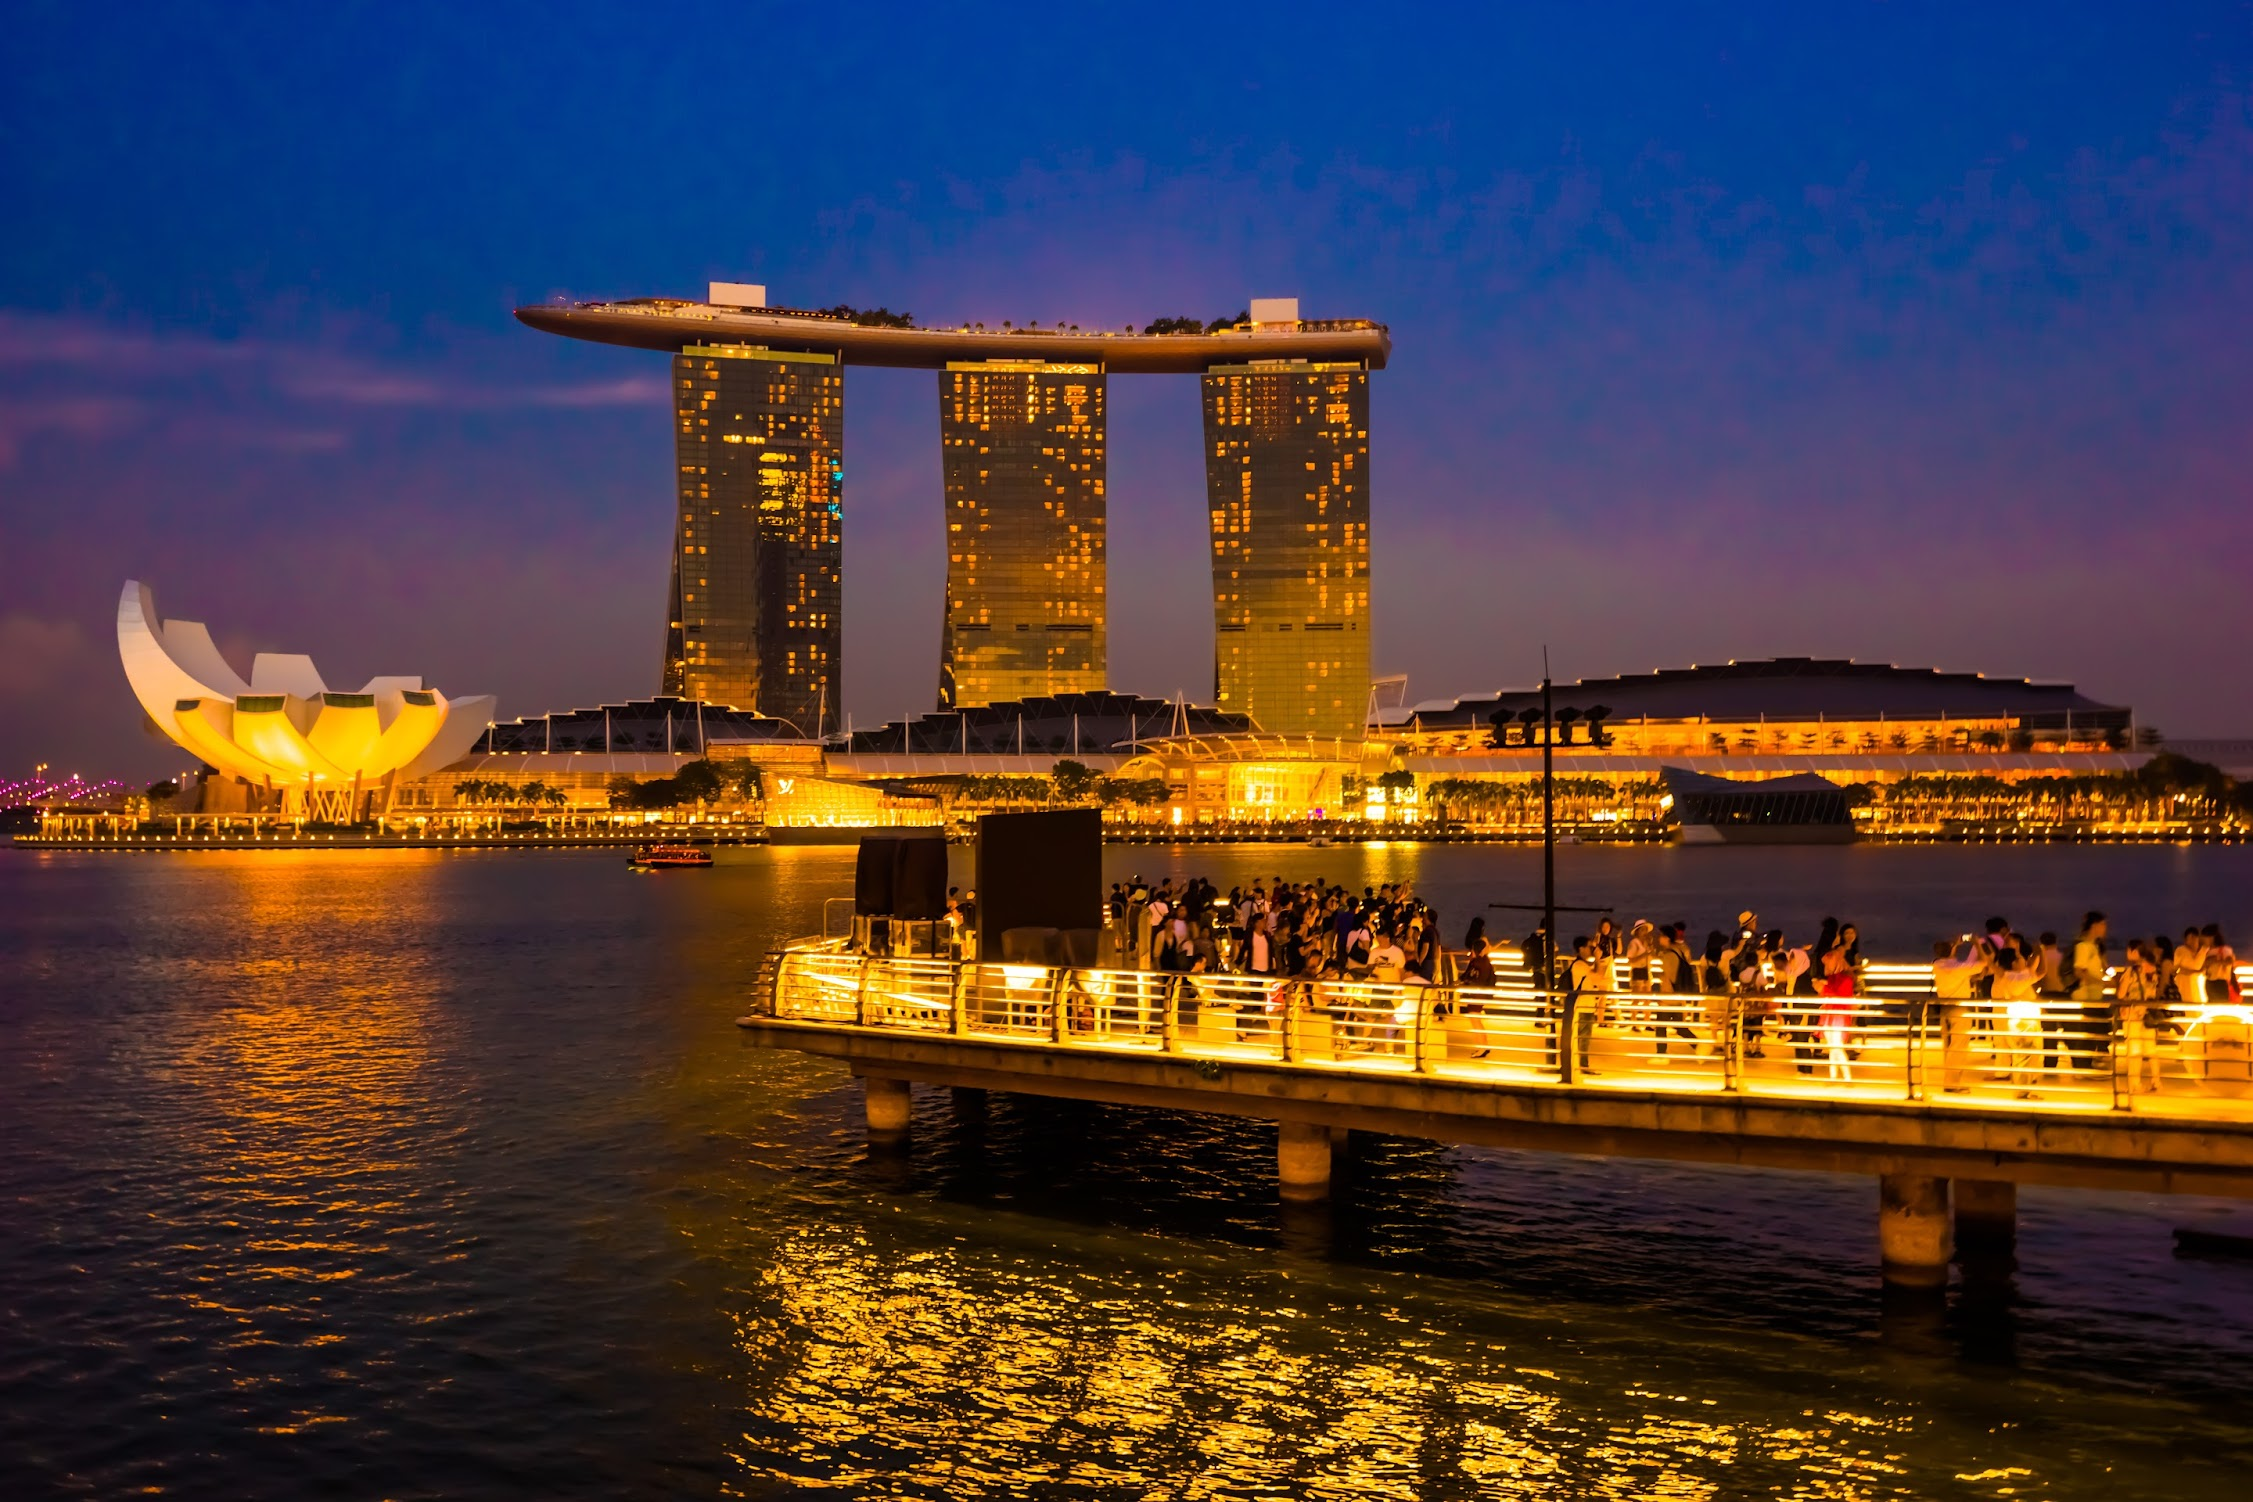 Singapore Marina Bay Sands sunset2